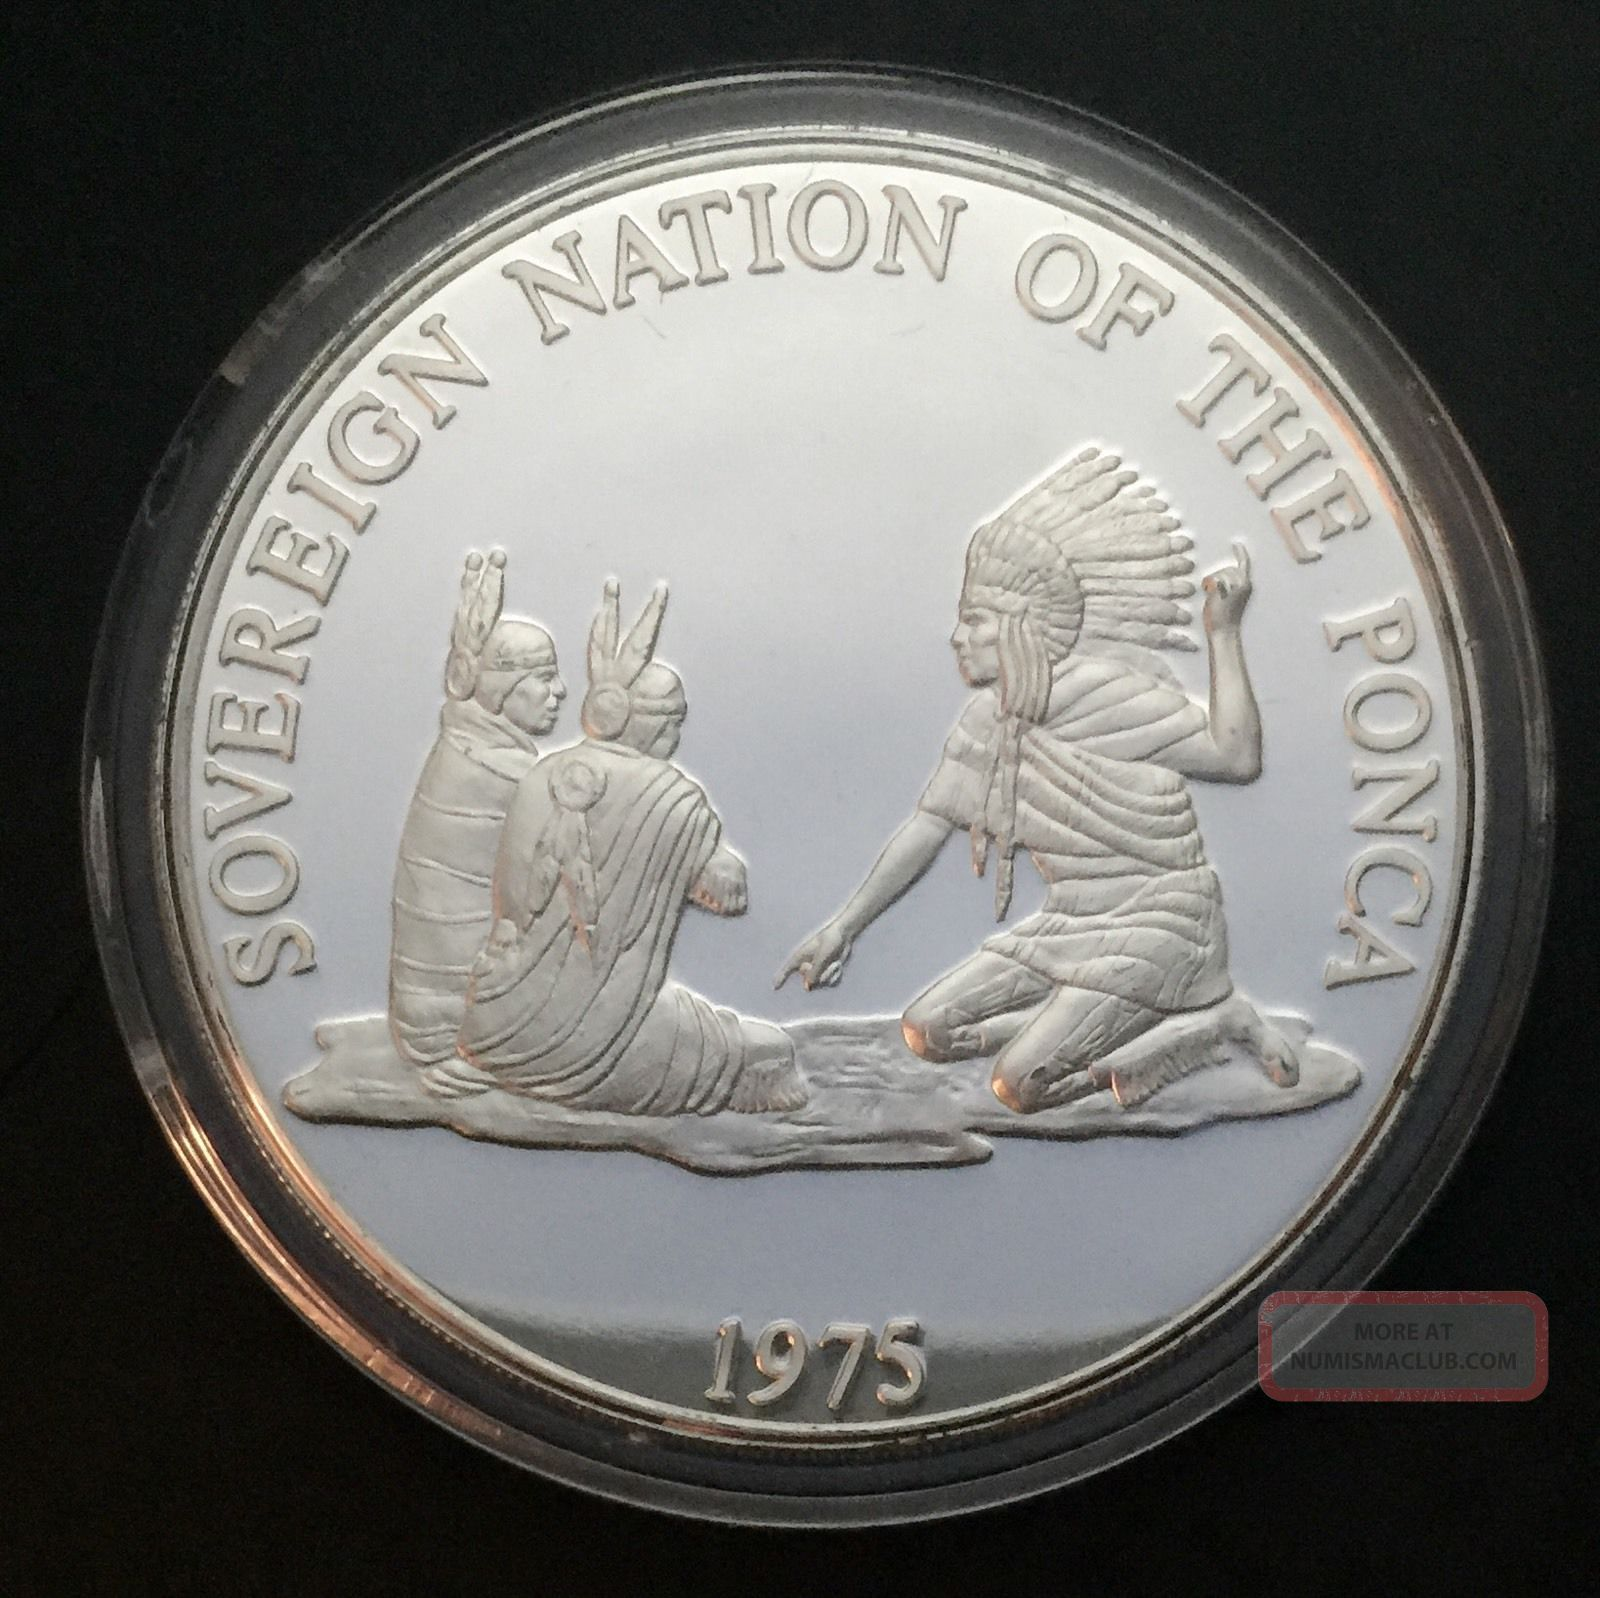 1975 Sovereign Nation Of The Ponca Indian Tribal Series Proof.  999 Silver Coin Silver photo